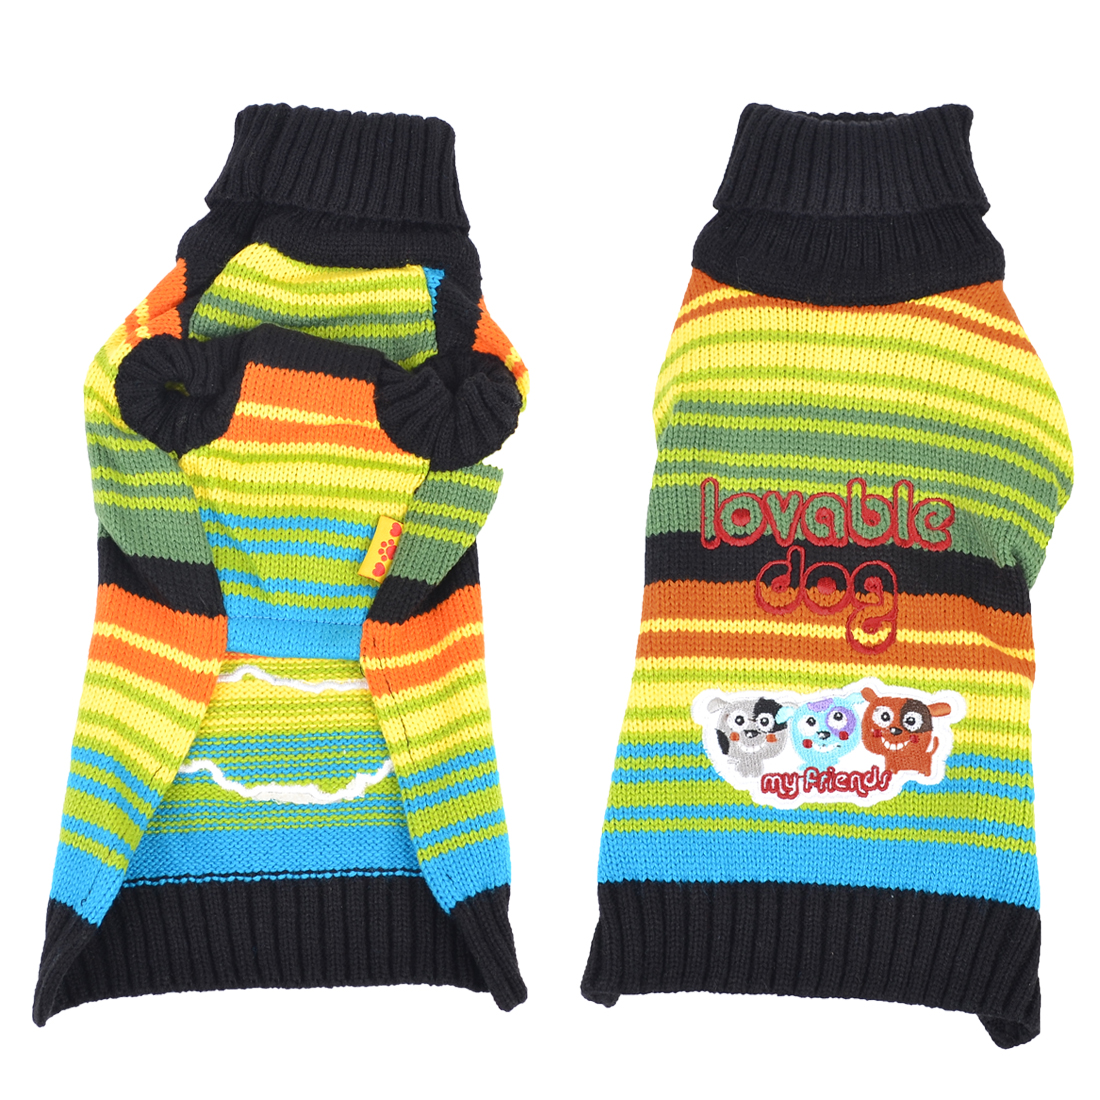 Winter Warm Colorful Hand Knit Yorkie Dog Clothing Pet Puppy Sweater M